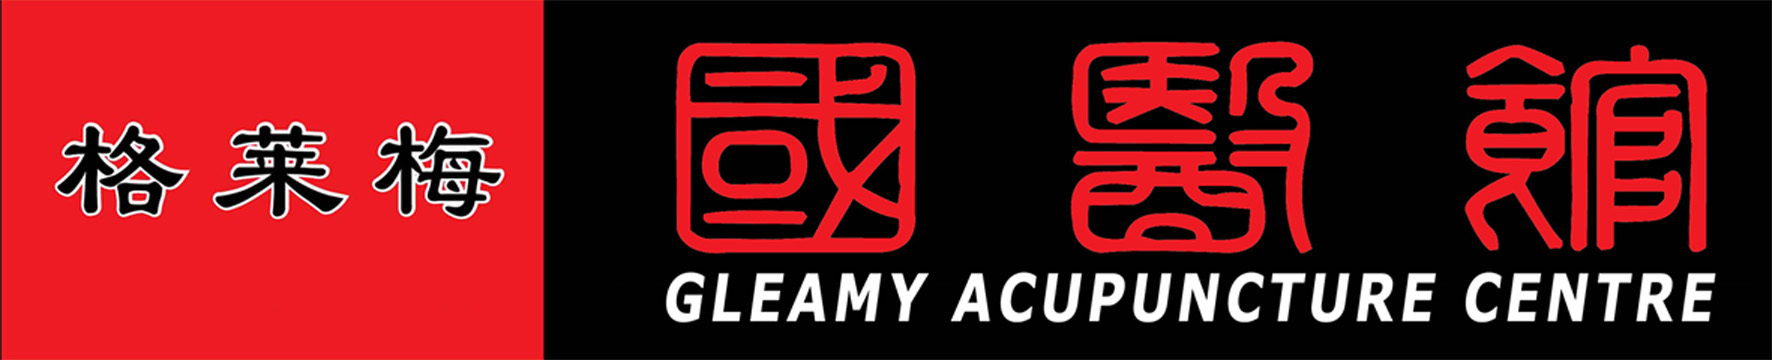 gleamy acupuncture centre